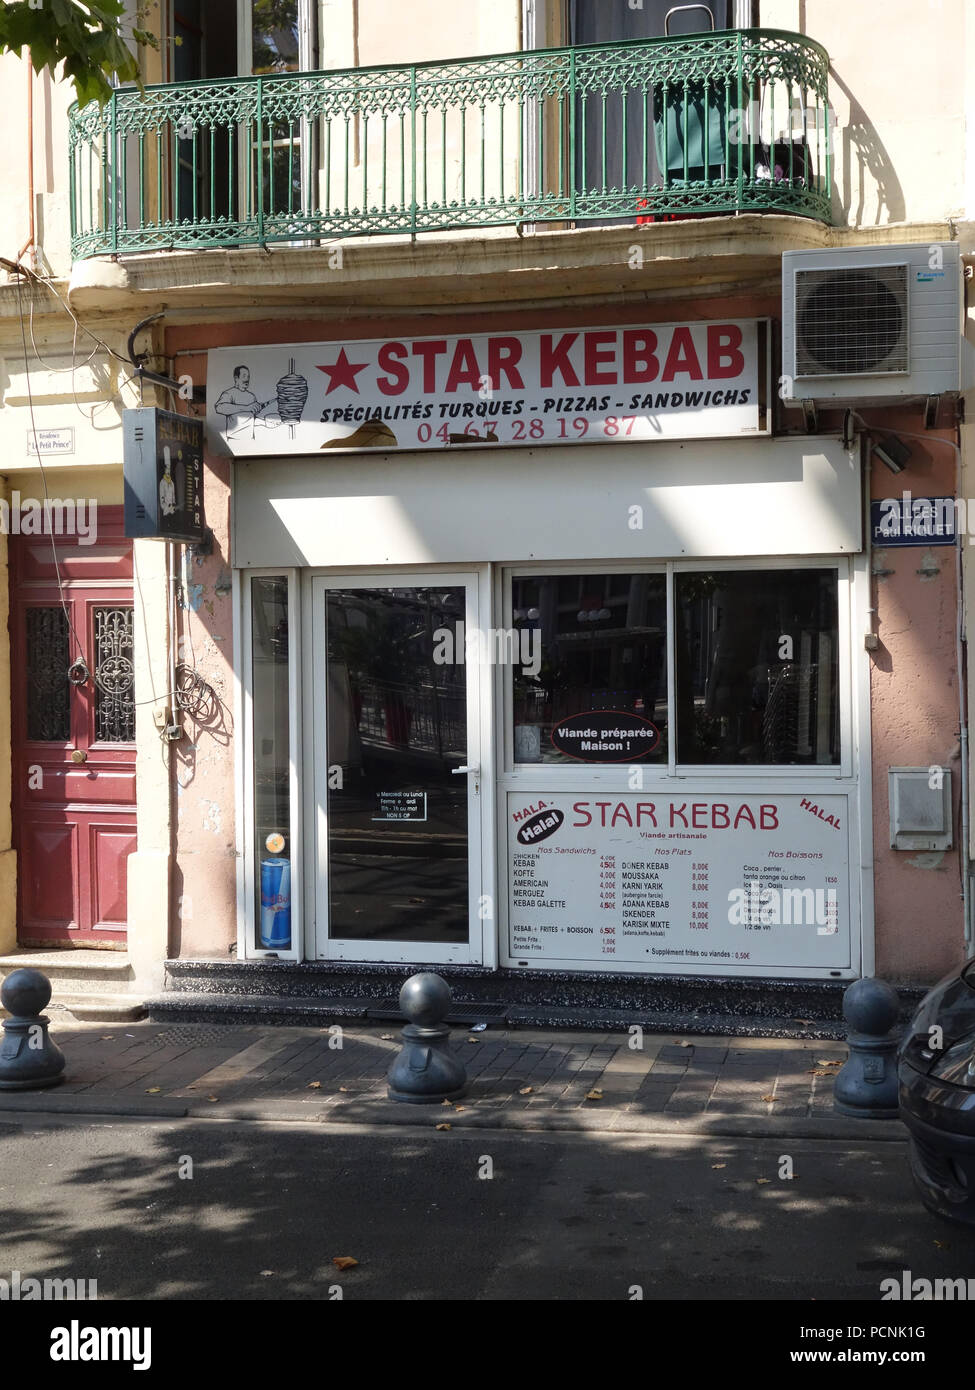 In And Out Beziers shop front of the star kebab restaurant in beziers, france